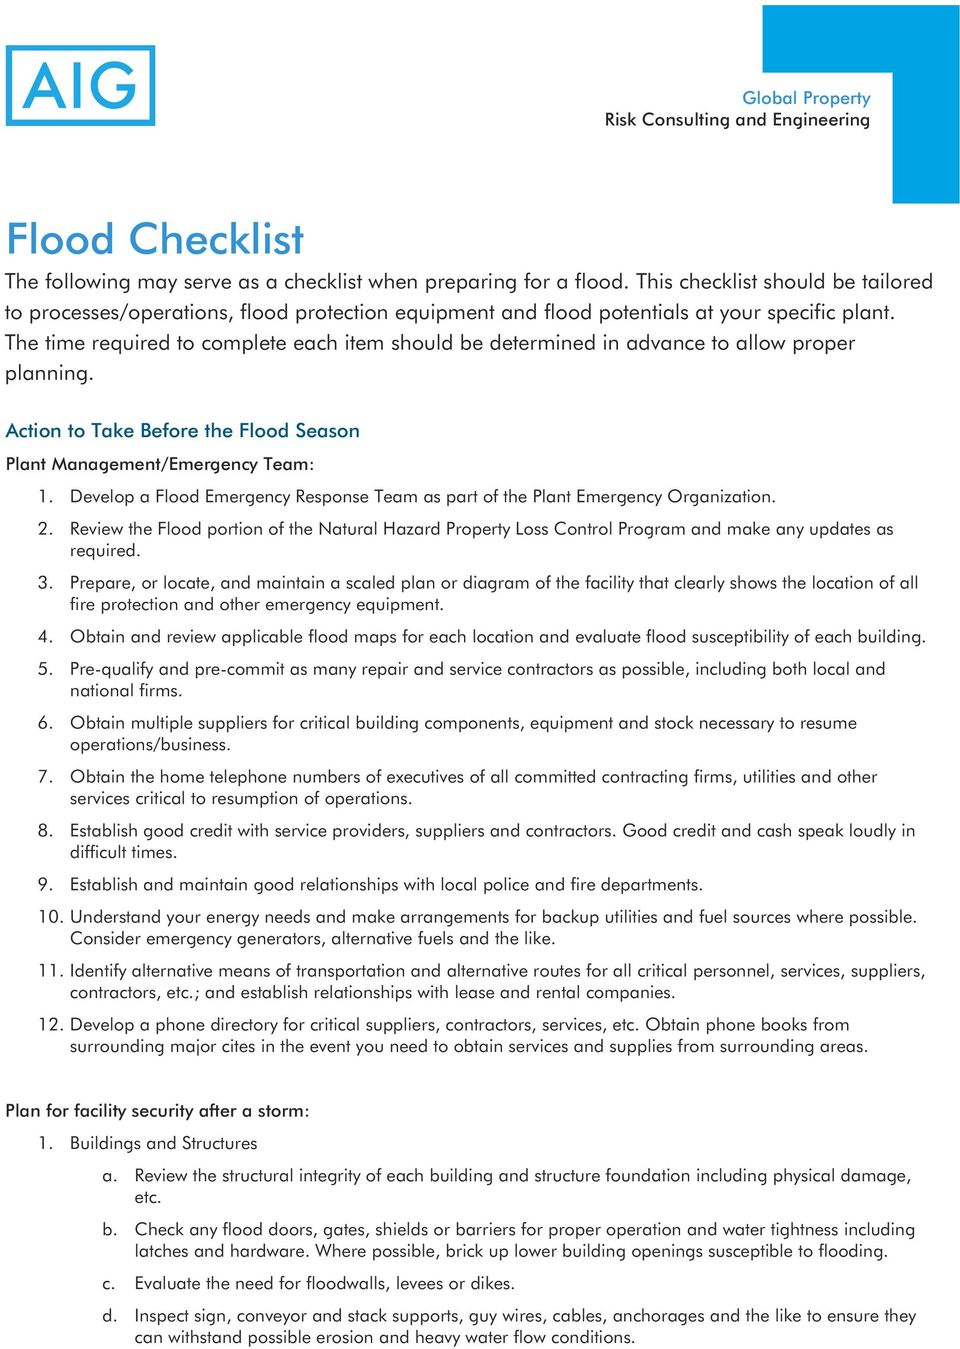 Develop a Flood Emergency Response Team as part of the Plant Emergency Organization. 2. Review the Flood portion of the Natural Hazard Property Loss Control Program and make any updates as required.